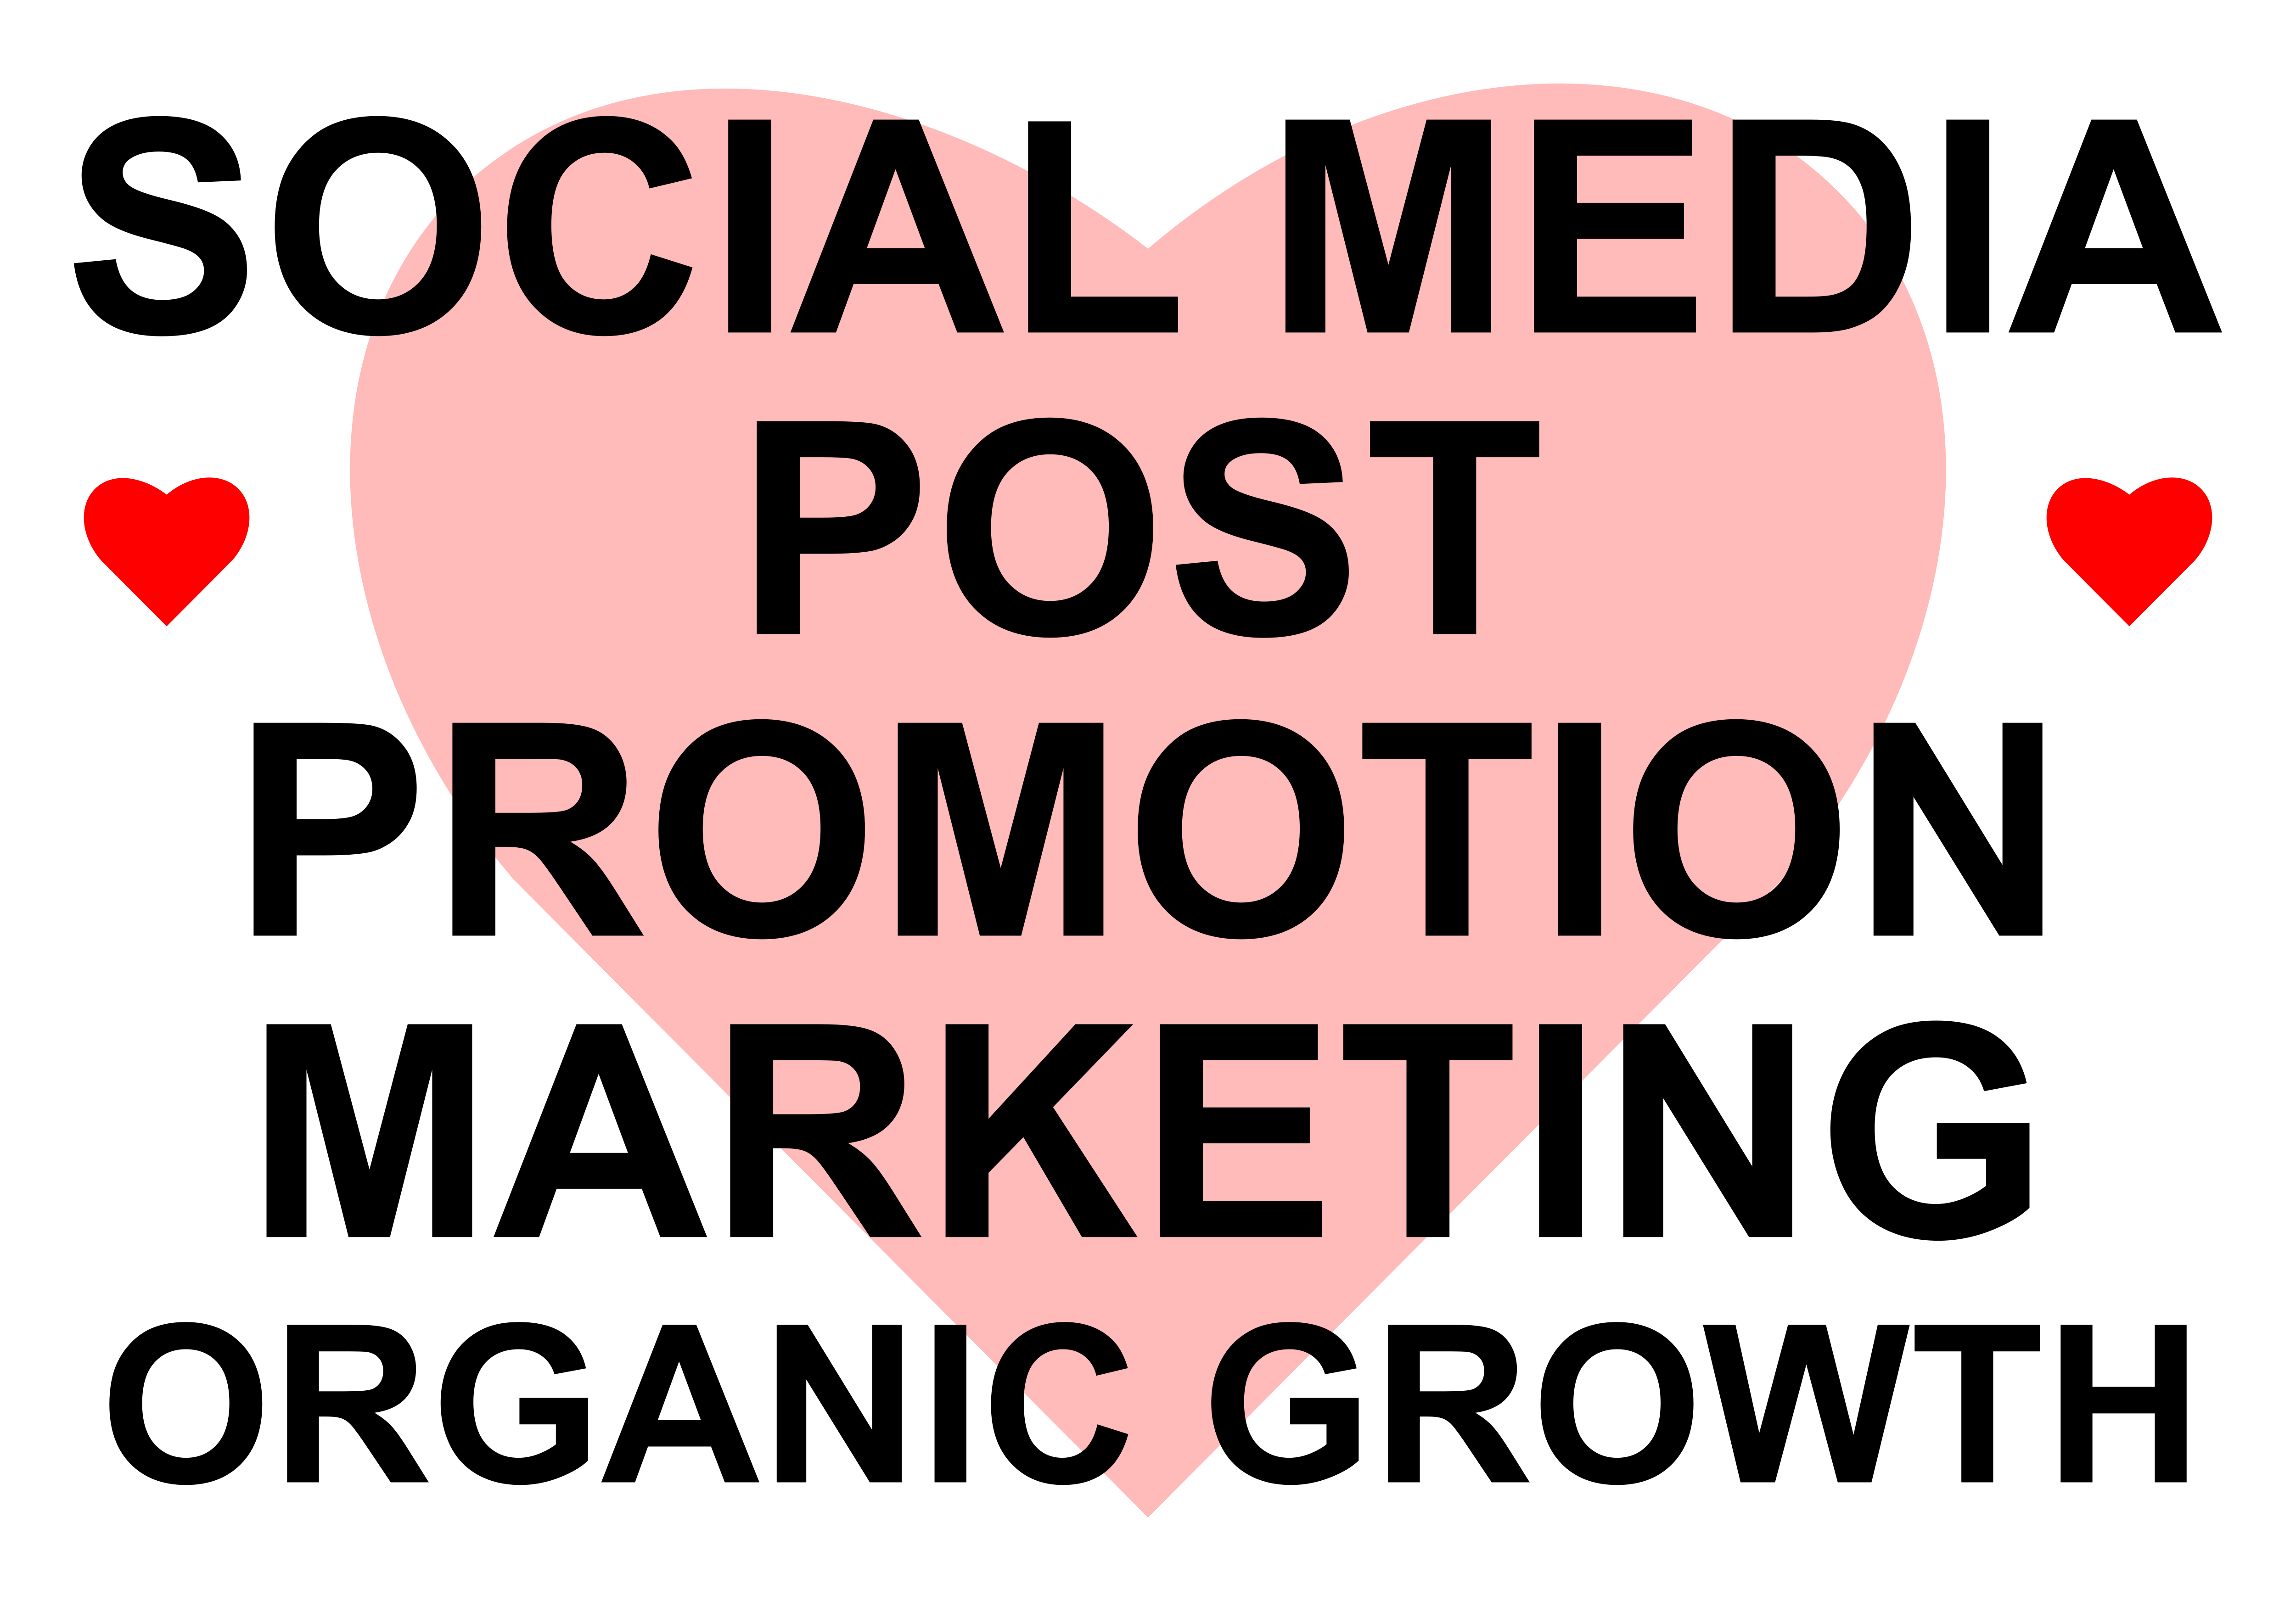 Do post promotion and marketing for organic growth